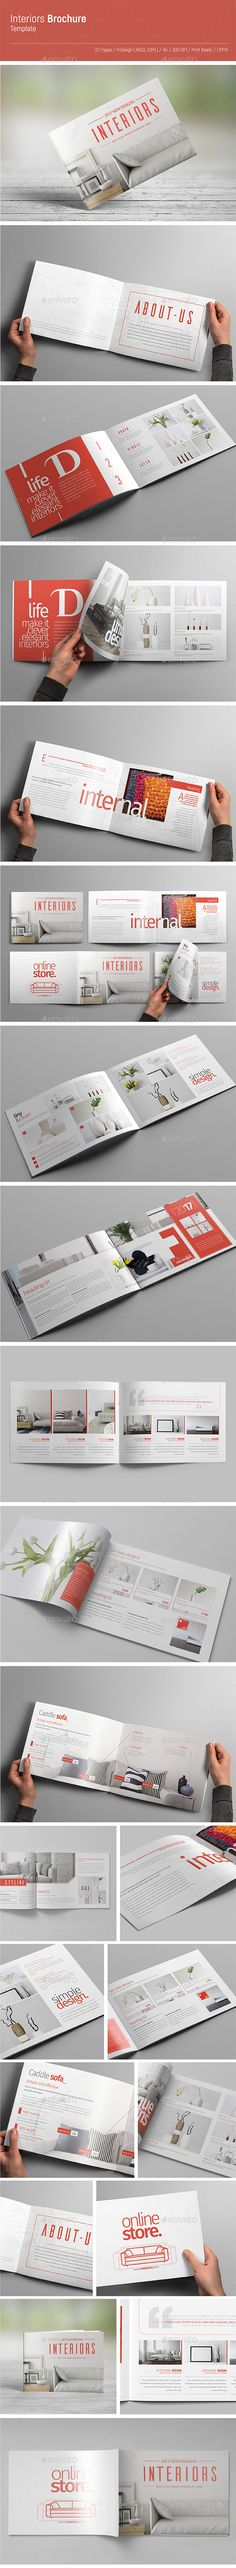 A5 Booklet - Catalogue  #design #portfolio #InDesign #8.2677x5.8268 • Click here to download ! http://graphicriver.net/item/a5-booklet-catalogue/16006713?ref=pxcr